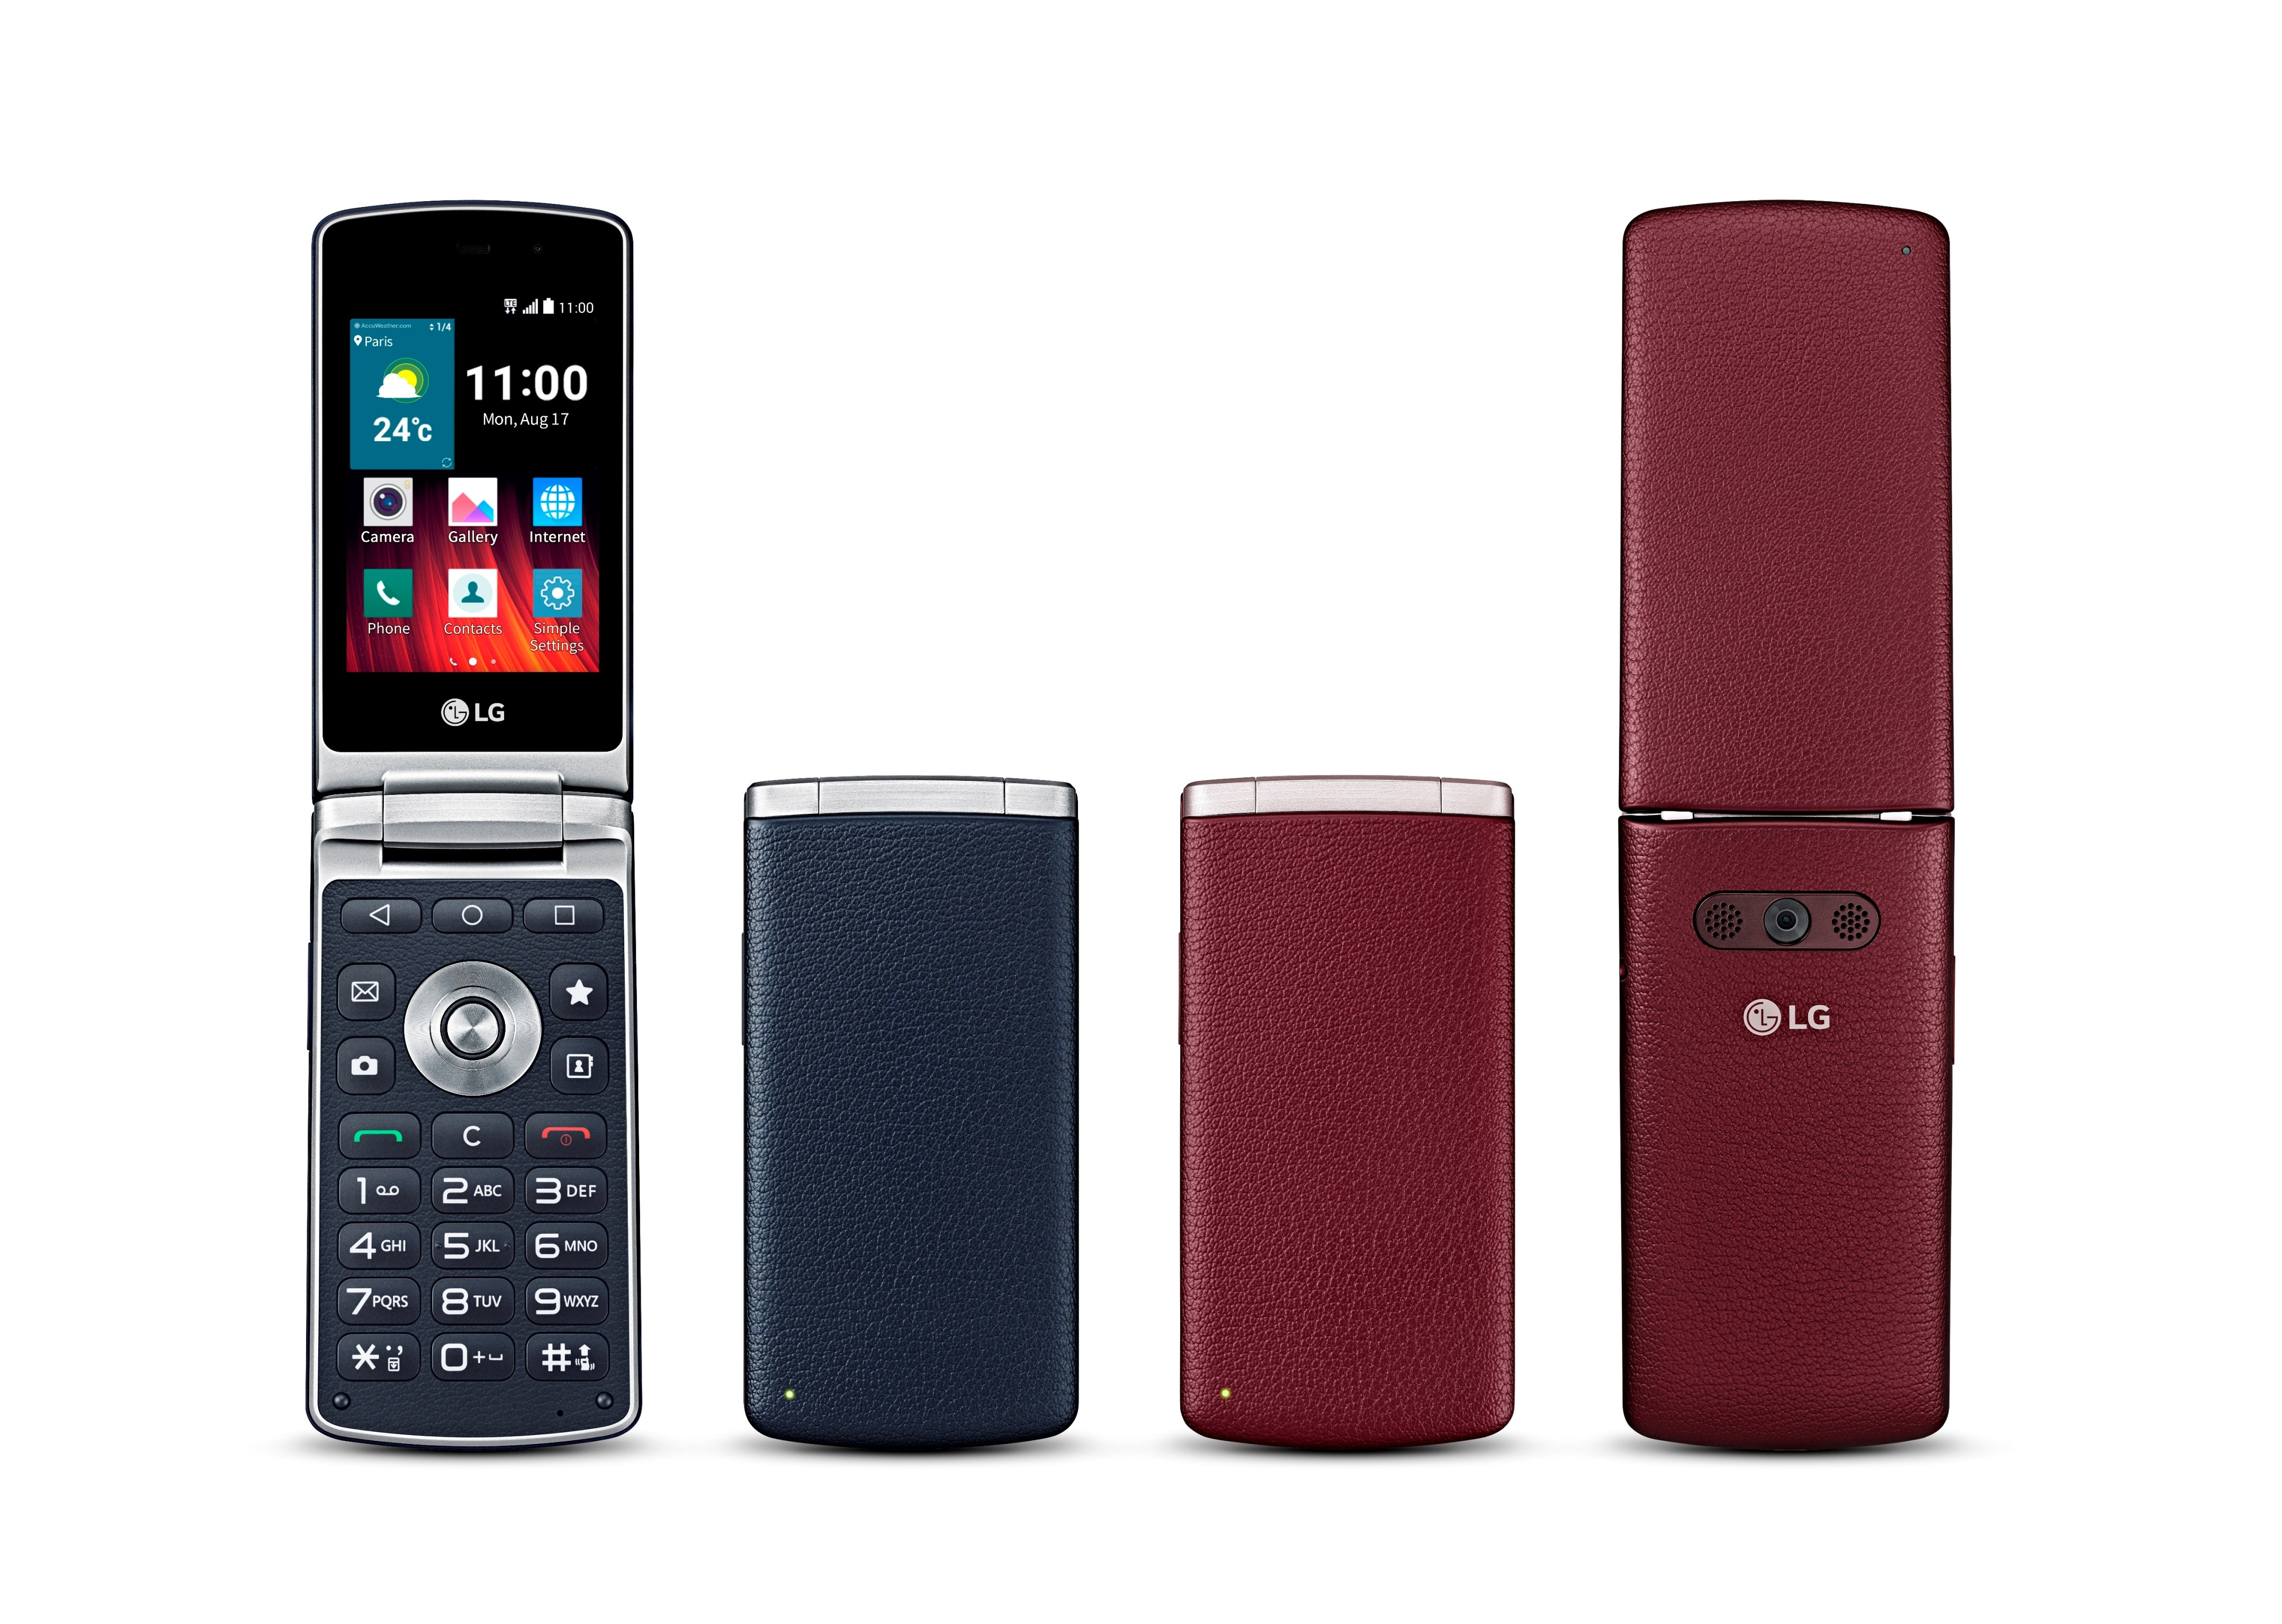 Rear and front views of the LG Wine Smart while open and closed, showing off its Navy and Burgundy models.